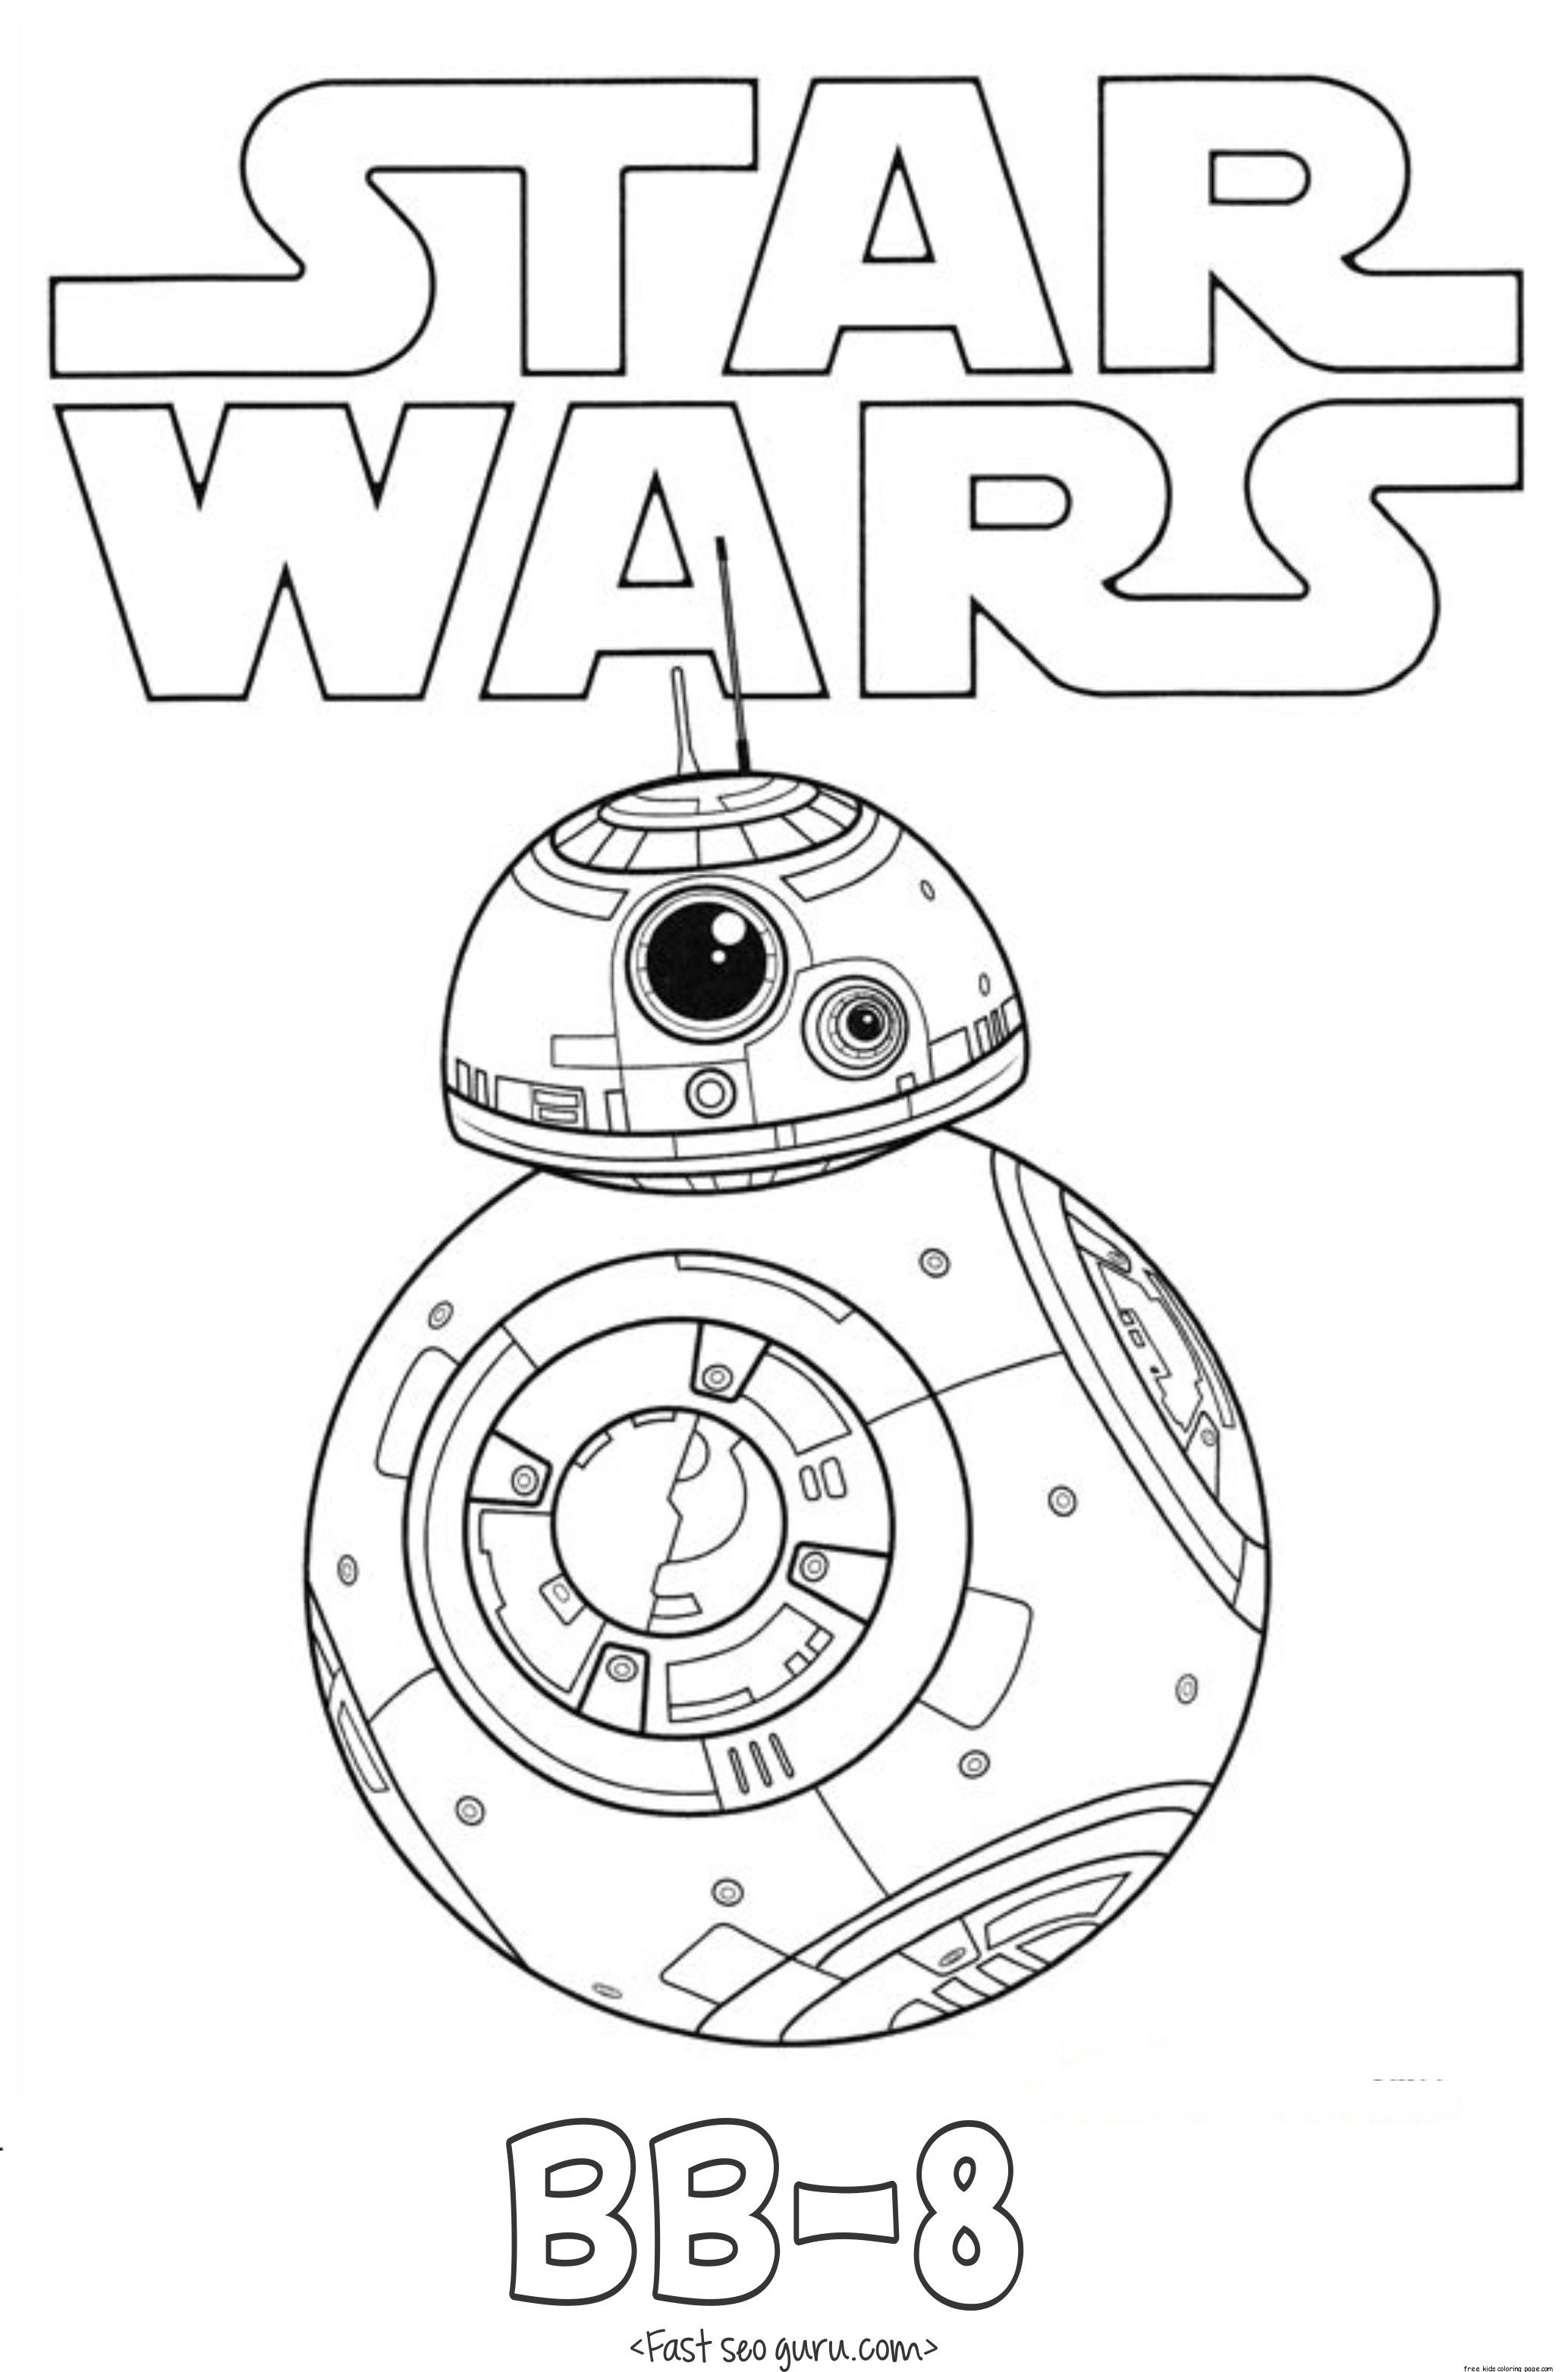 star wars free coloring pages free printable star wars coloring pages free printable coloring wars star free pages